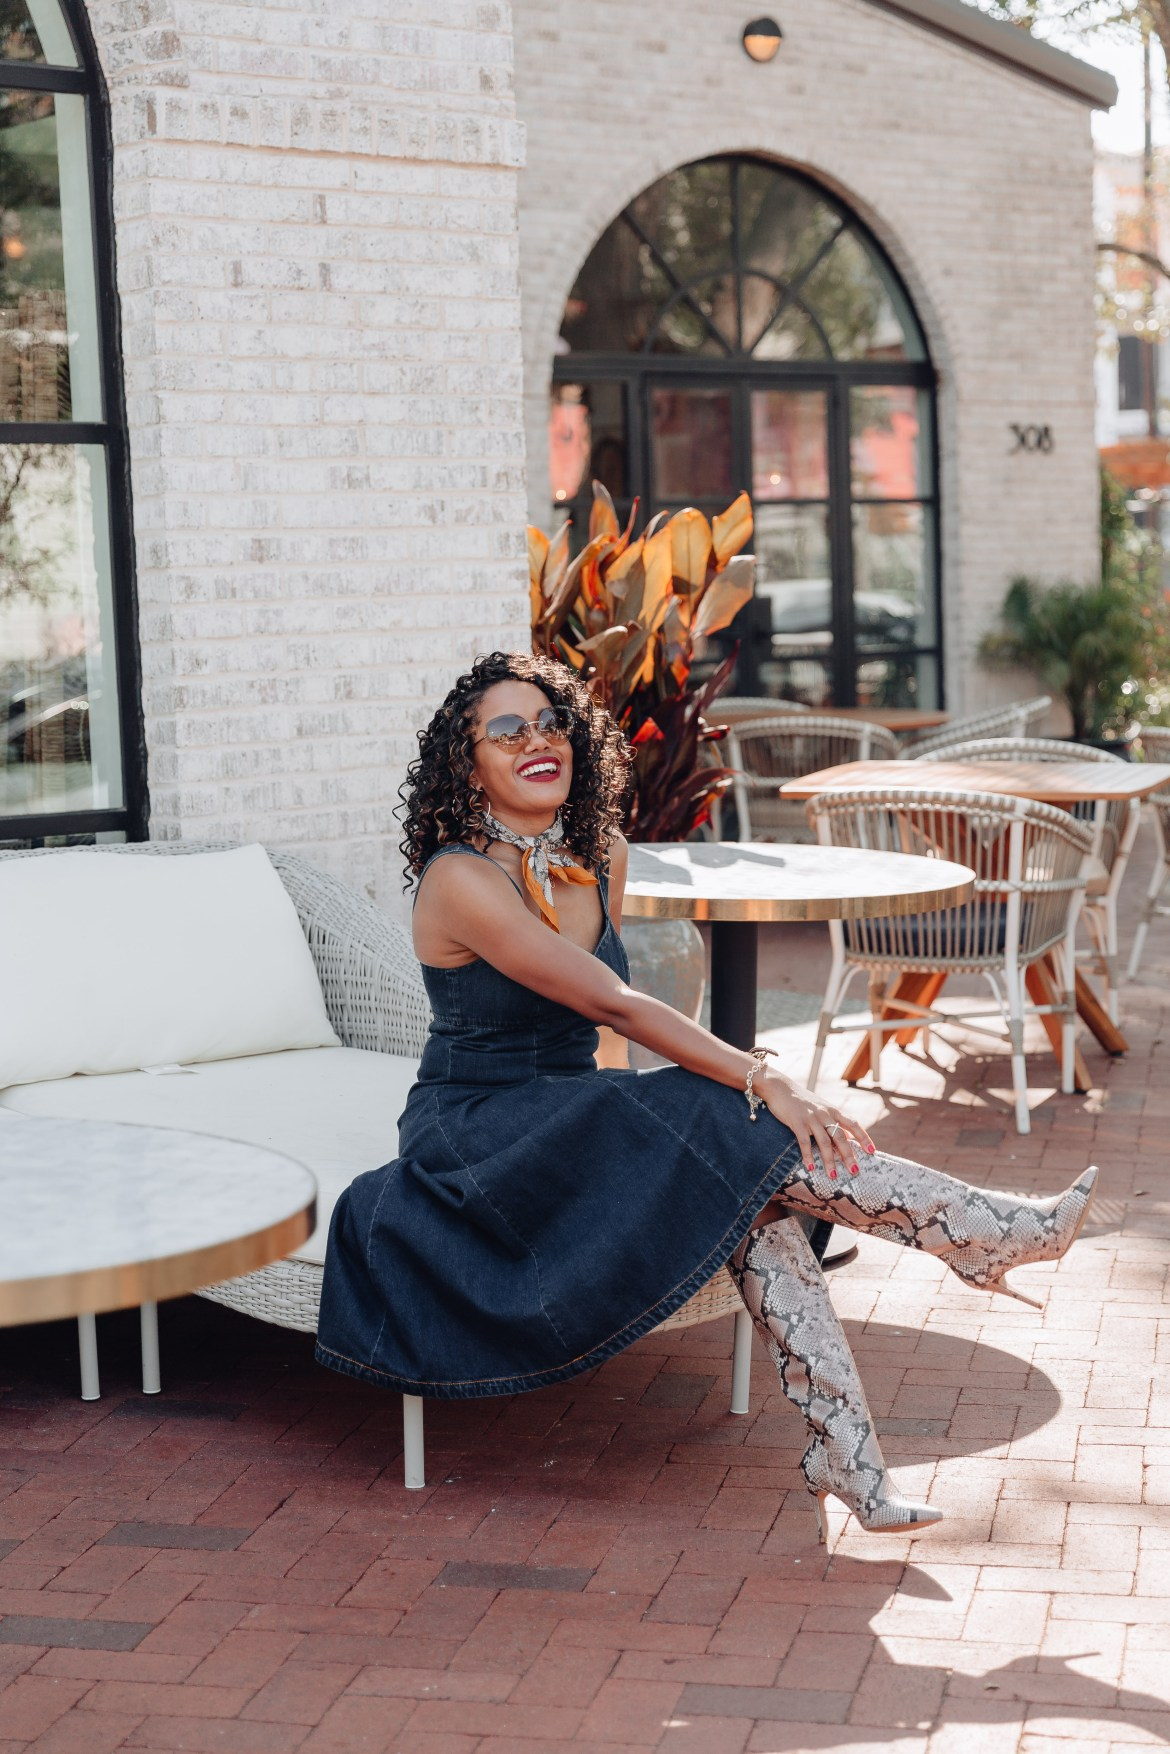 fall fashion inspo, denim midi dress, how to wear denim dress, denim dress and boots outfit, snakeskin knee boot outfit, steve madden snakeskin knee boots, fall transitional outfit, how to wear denim dress in fall, snakeskin knee boot inspo, denim midi dress, black fashion blogger, dallas fashion blogger, 90s handbag inspo, fall dress inspo, fall dress outfit idea, denim dress outfit idea, snakeskin boot outfit idea